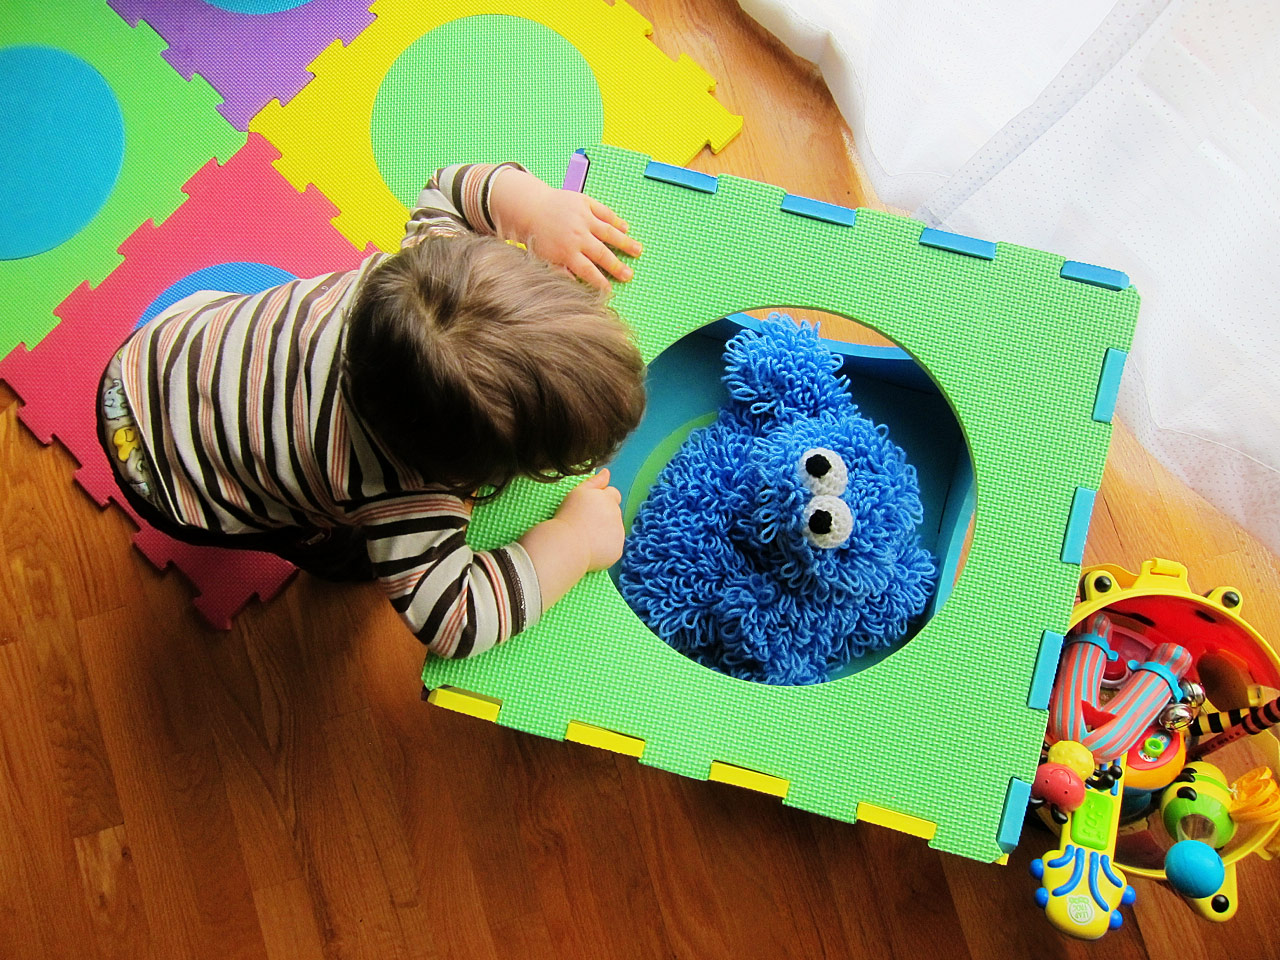 Boo Boo gazes at Cookie Monster